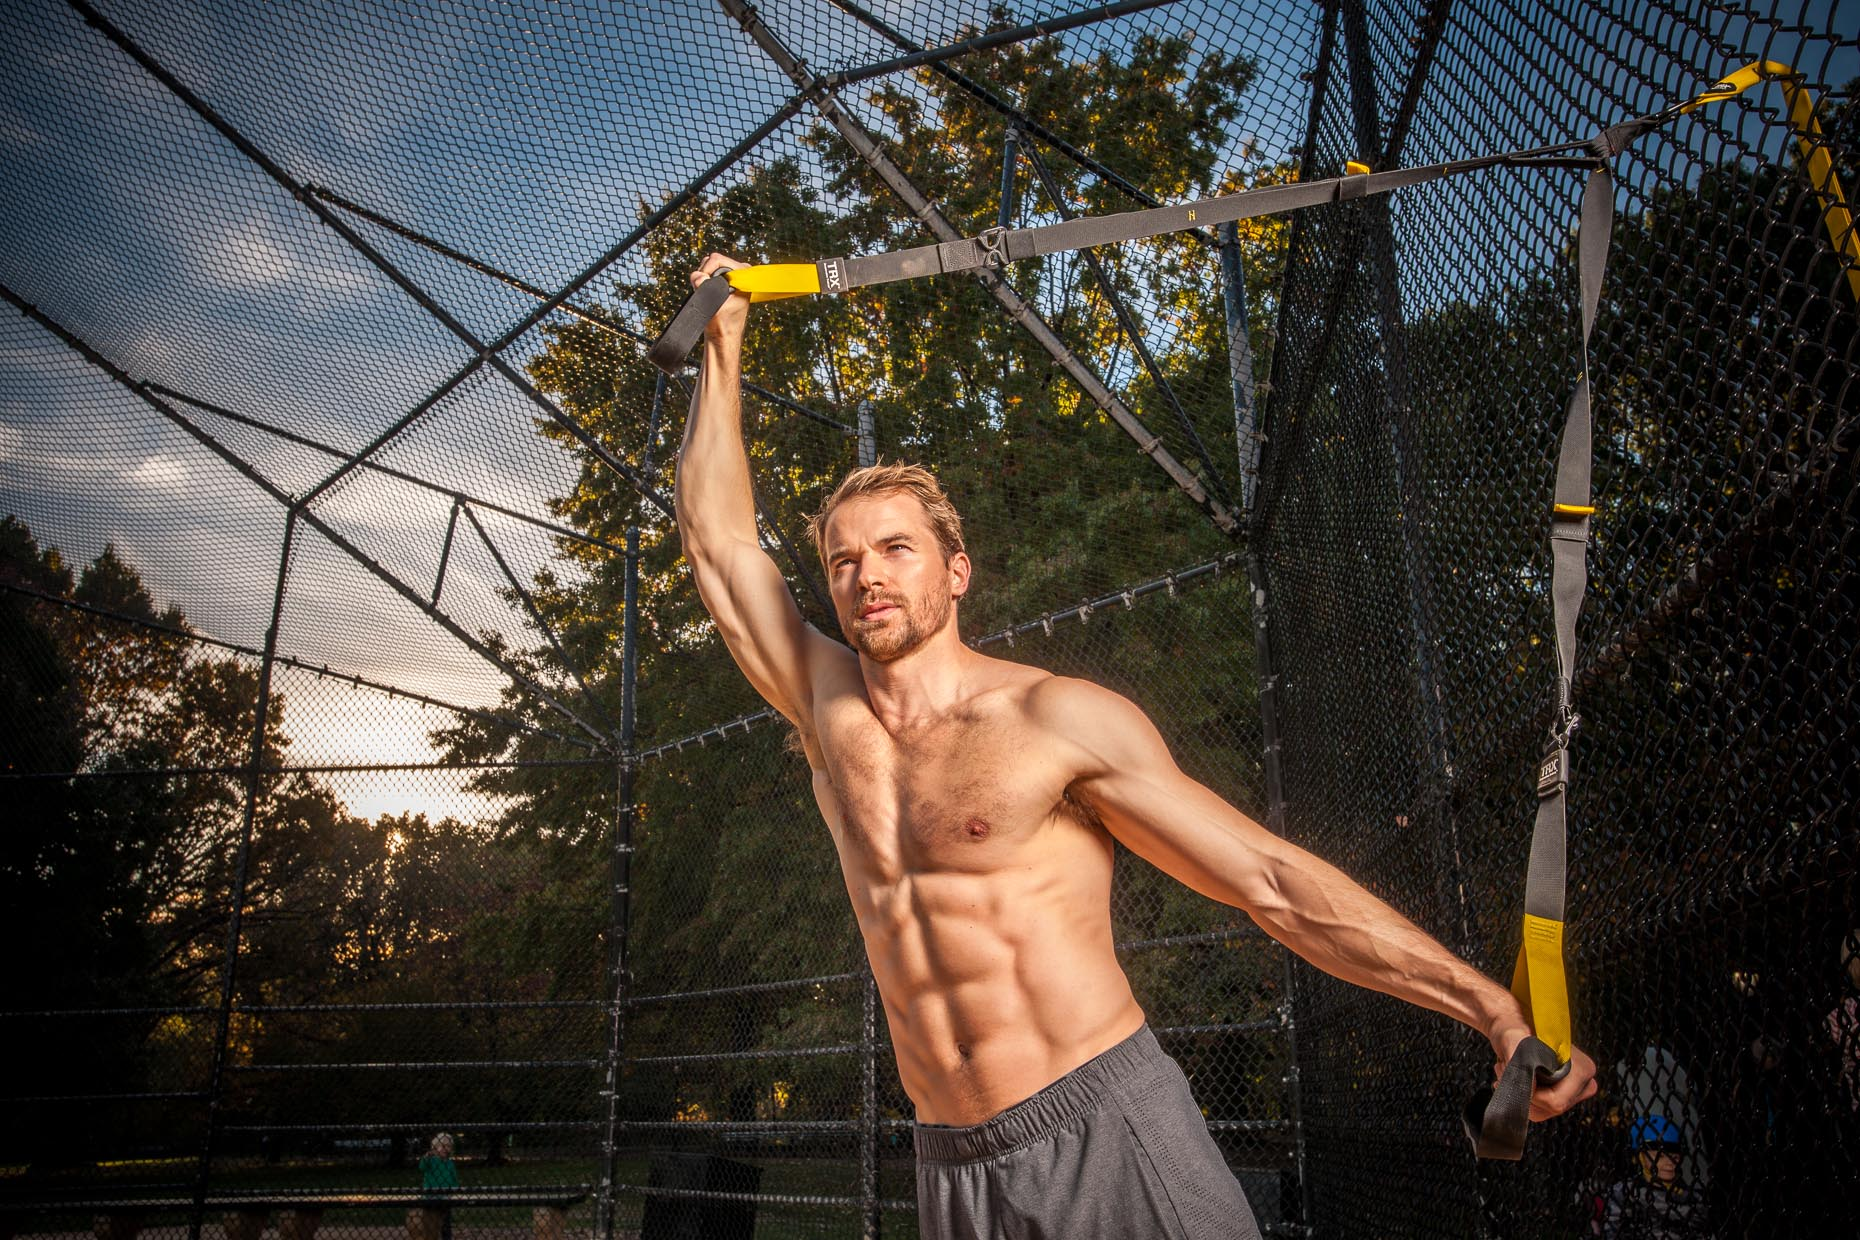 Lifestyle Photographer - Exercise - Fitness - Sports - TRX Bands